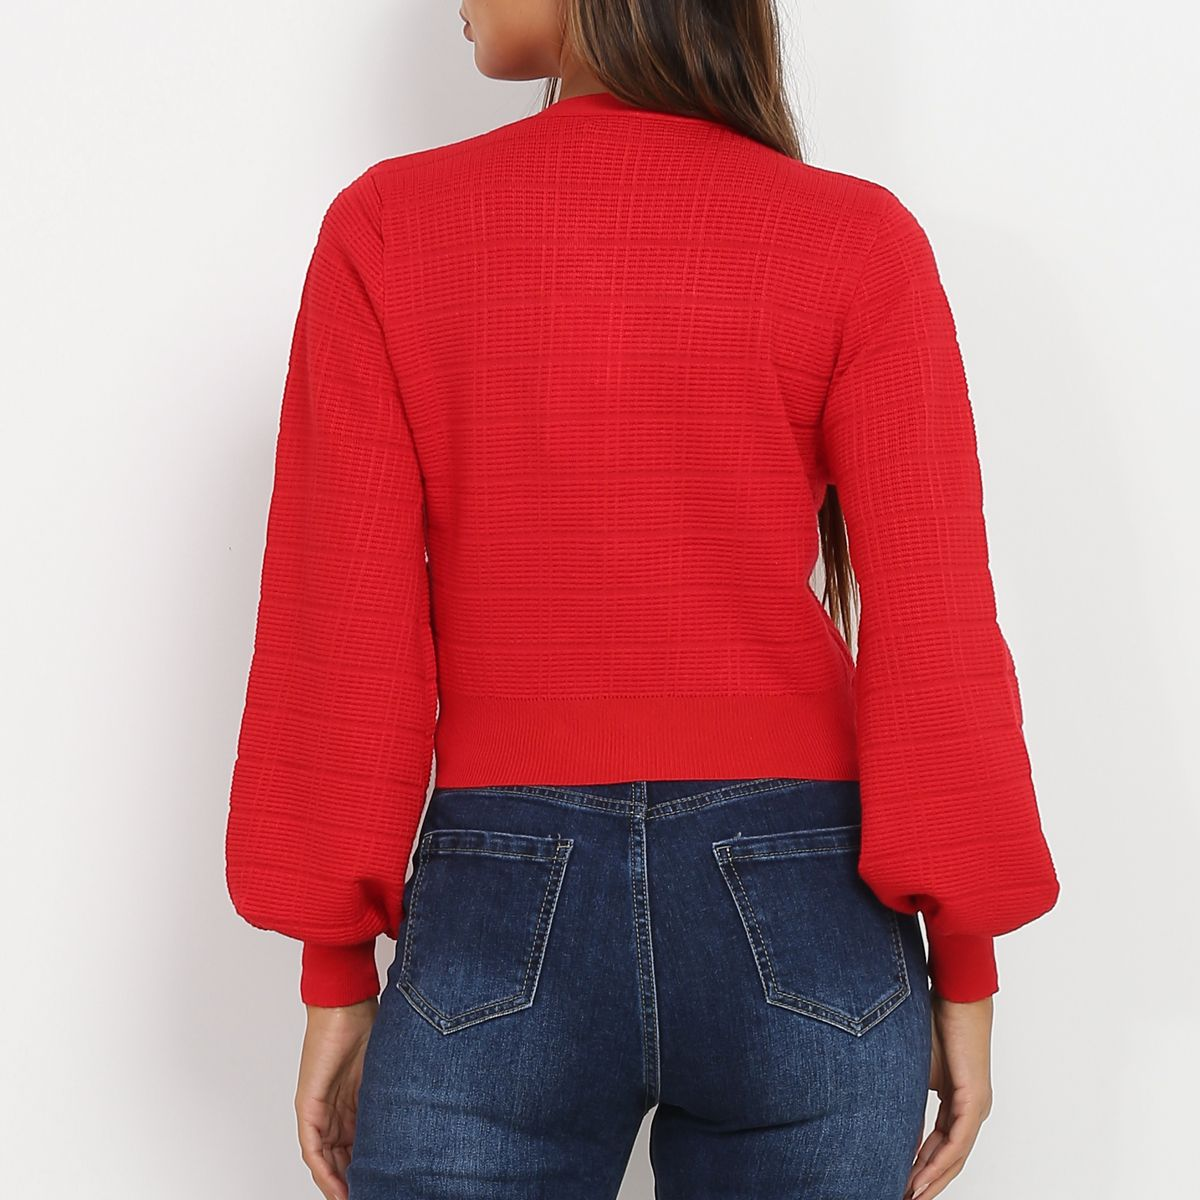 Gilet cropped rouge à manches bouffantes